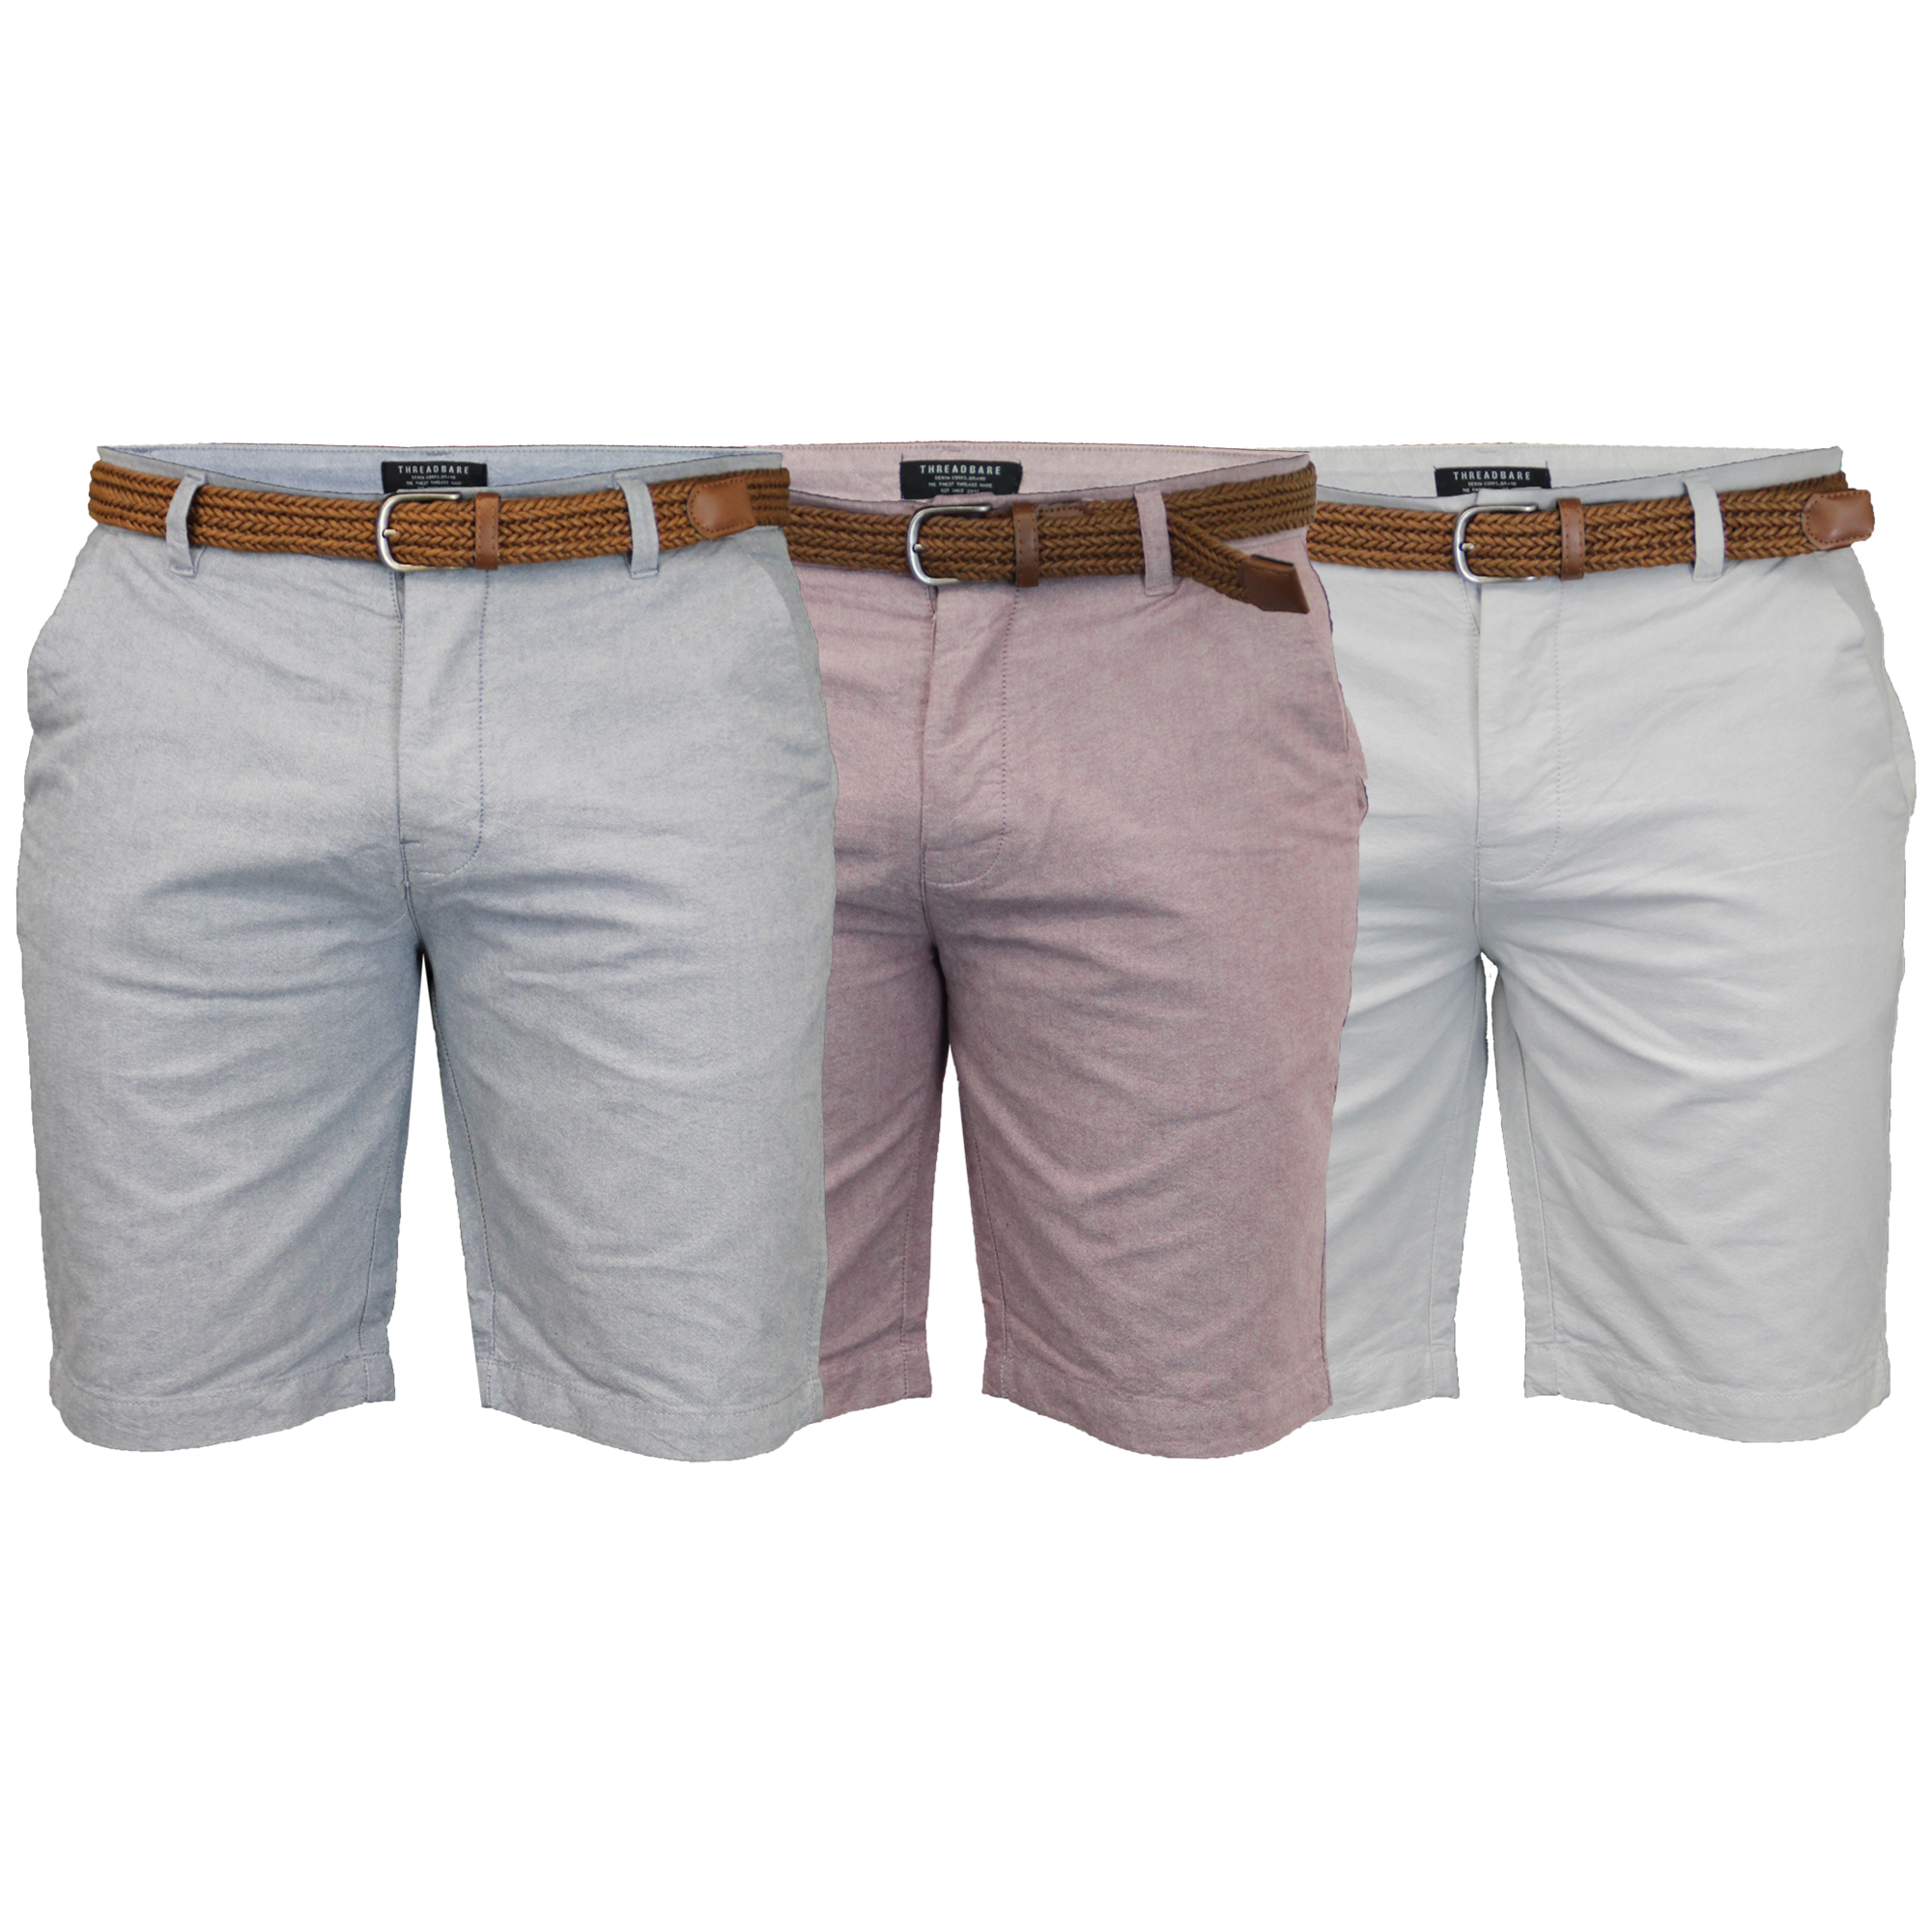 Mens-Cotton-Oxford-Chino-Shorts-Threadbare-Belted-Pants-Knee-Length-Summer-New thumbnail 6